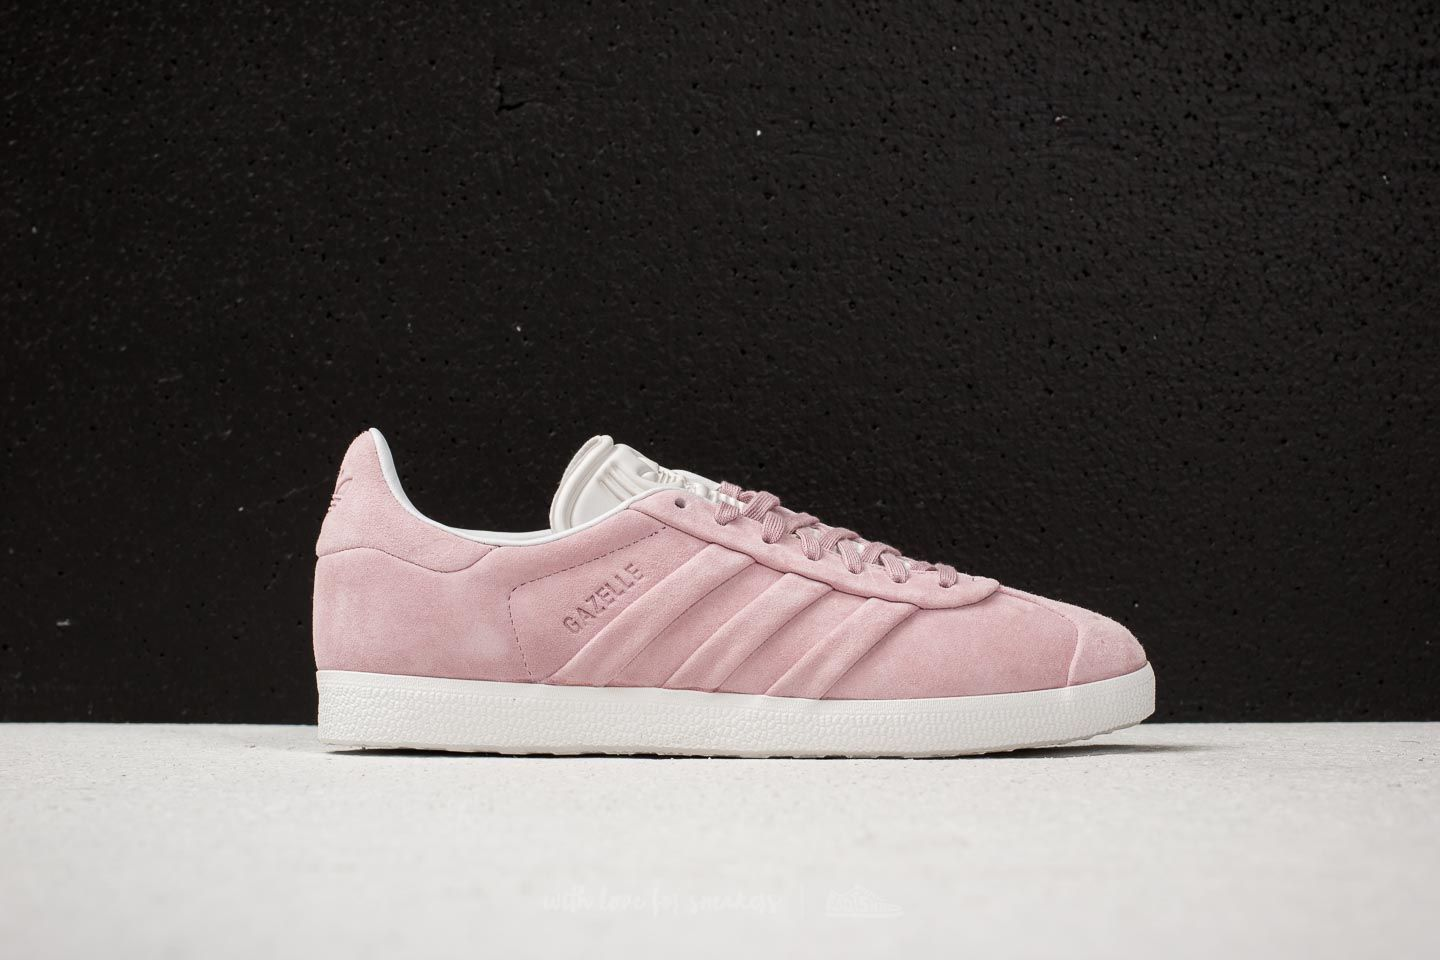 official photos 699e0 f361e adidas Gazelle Stitch And Turn W Wonder Pink Wonder Pink Ftw White at a